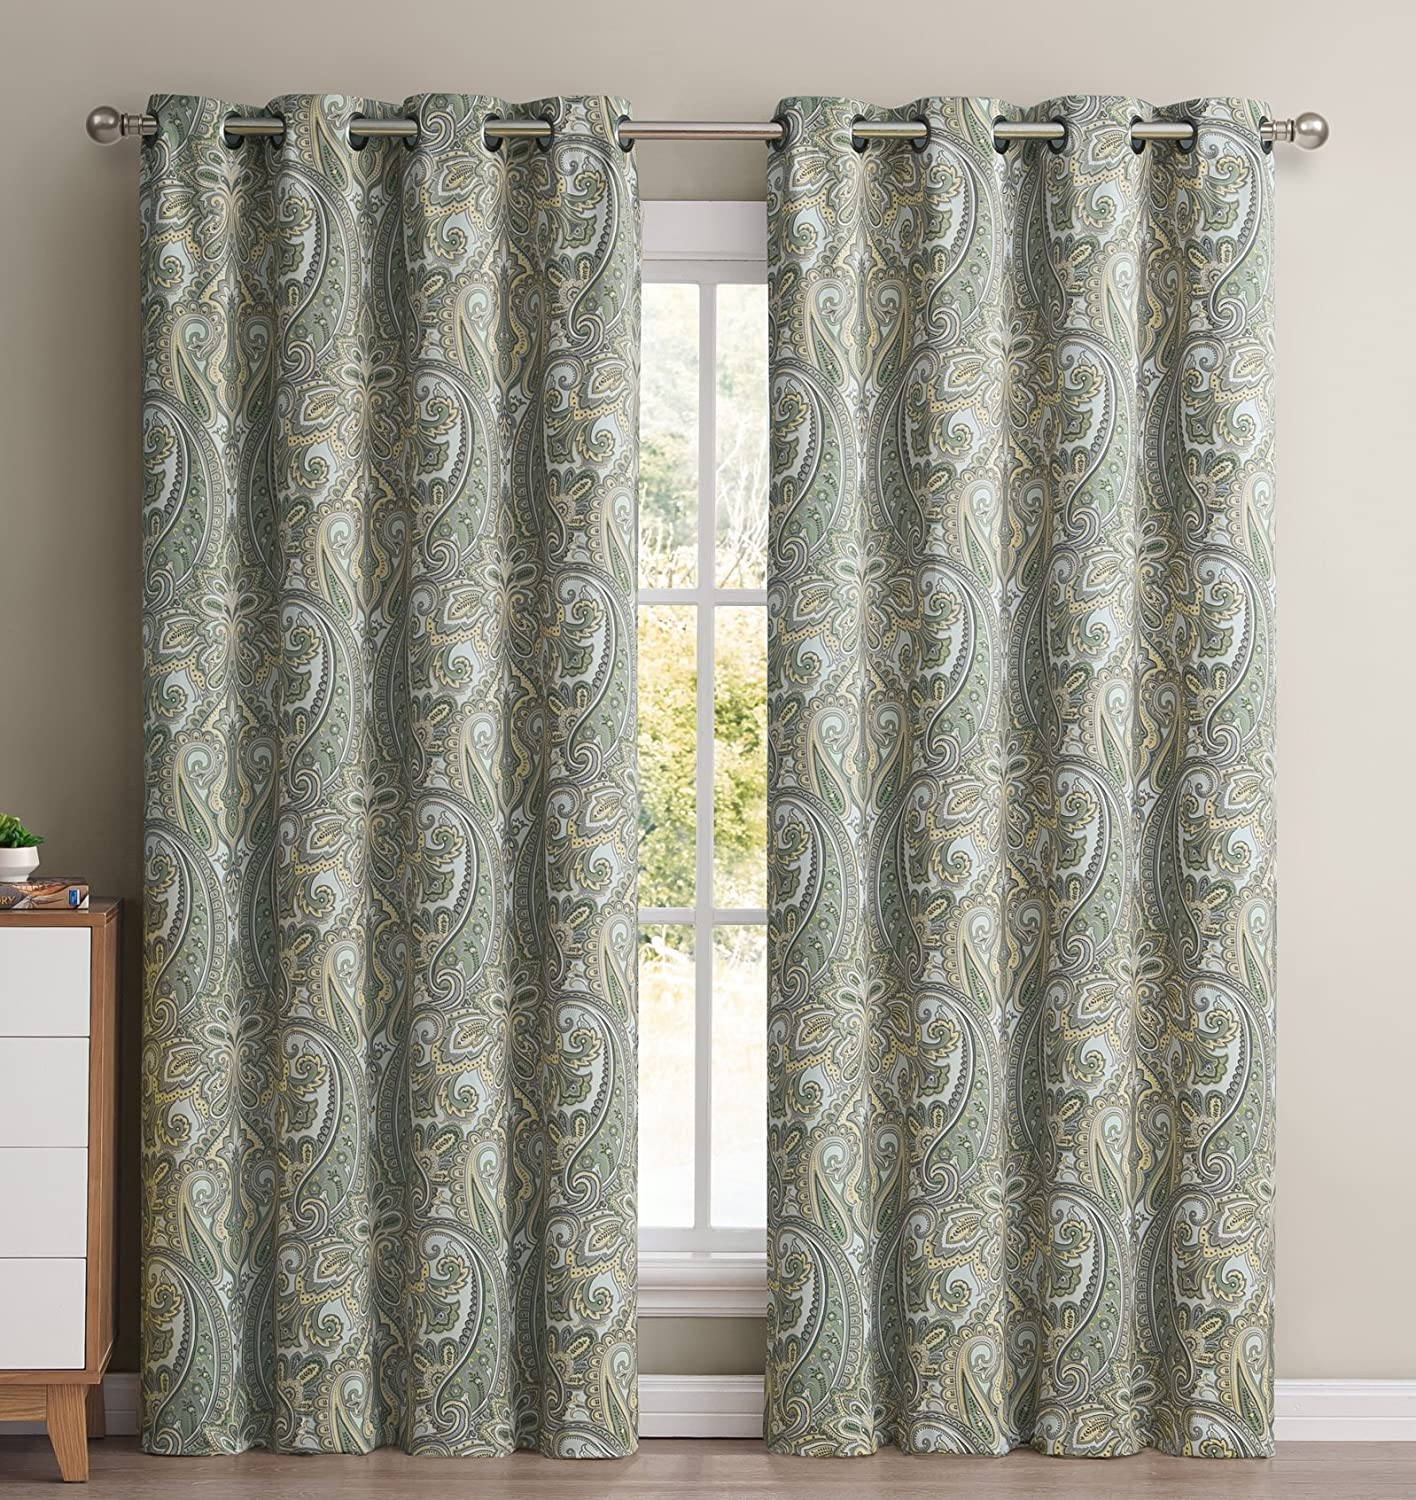 HLC.ME Paris Paisley Damask Thermal Blackout Grommet Window Curtain Panels